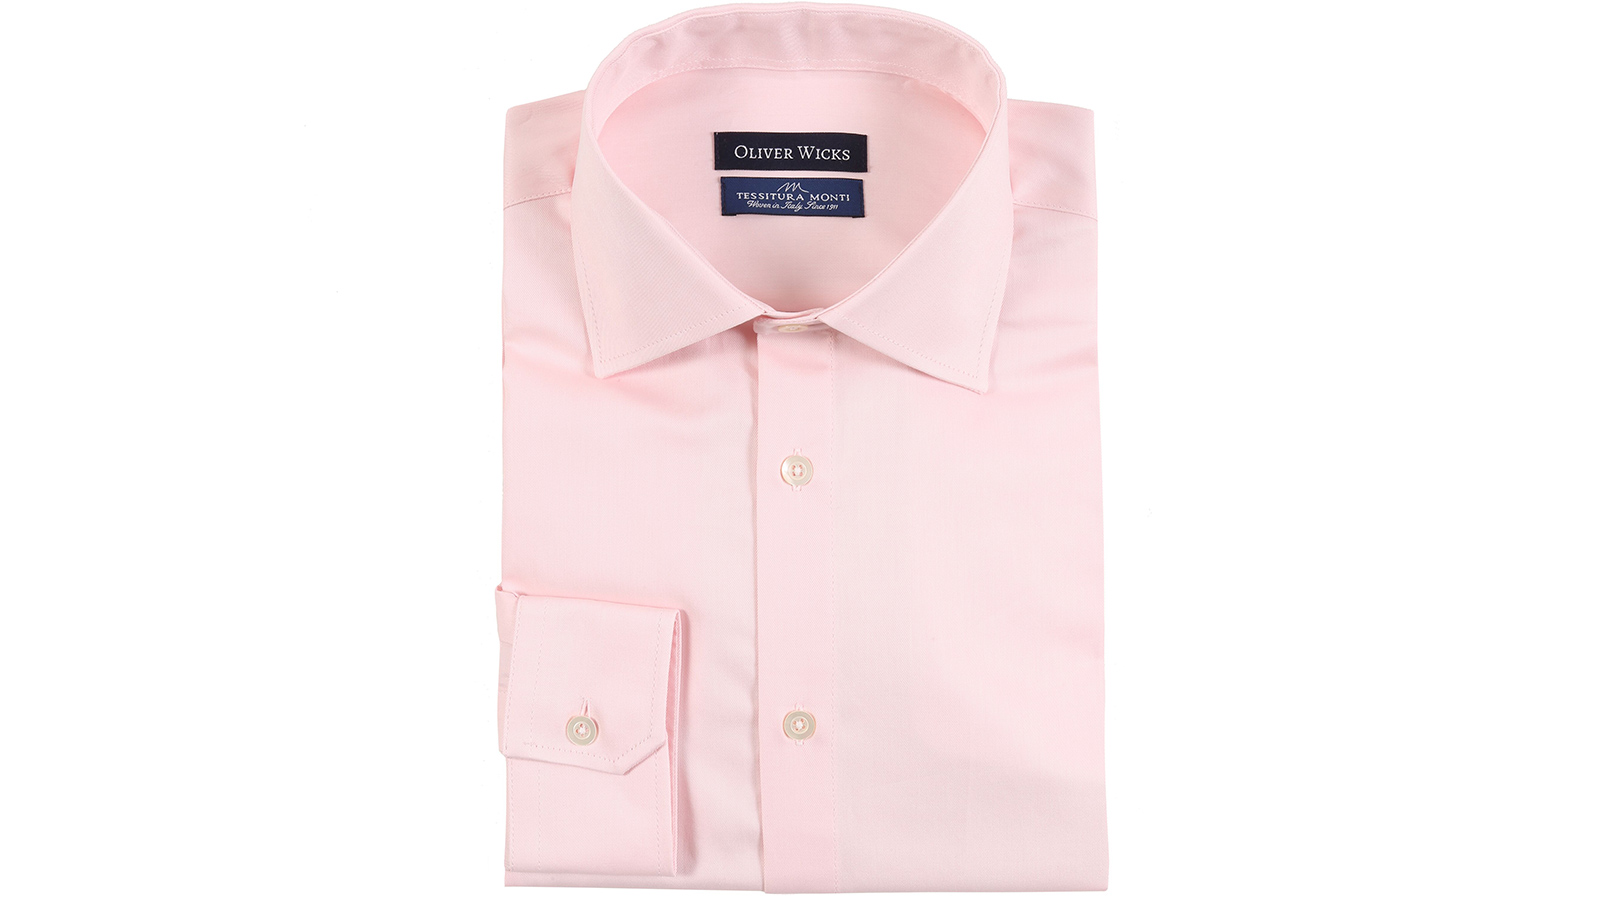 Melon Pink Two-Ply Cotton Twill Shirt - slider image